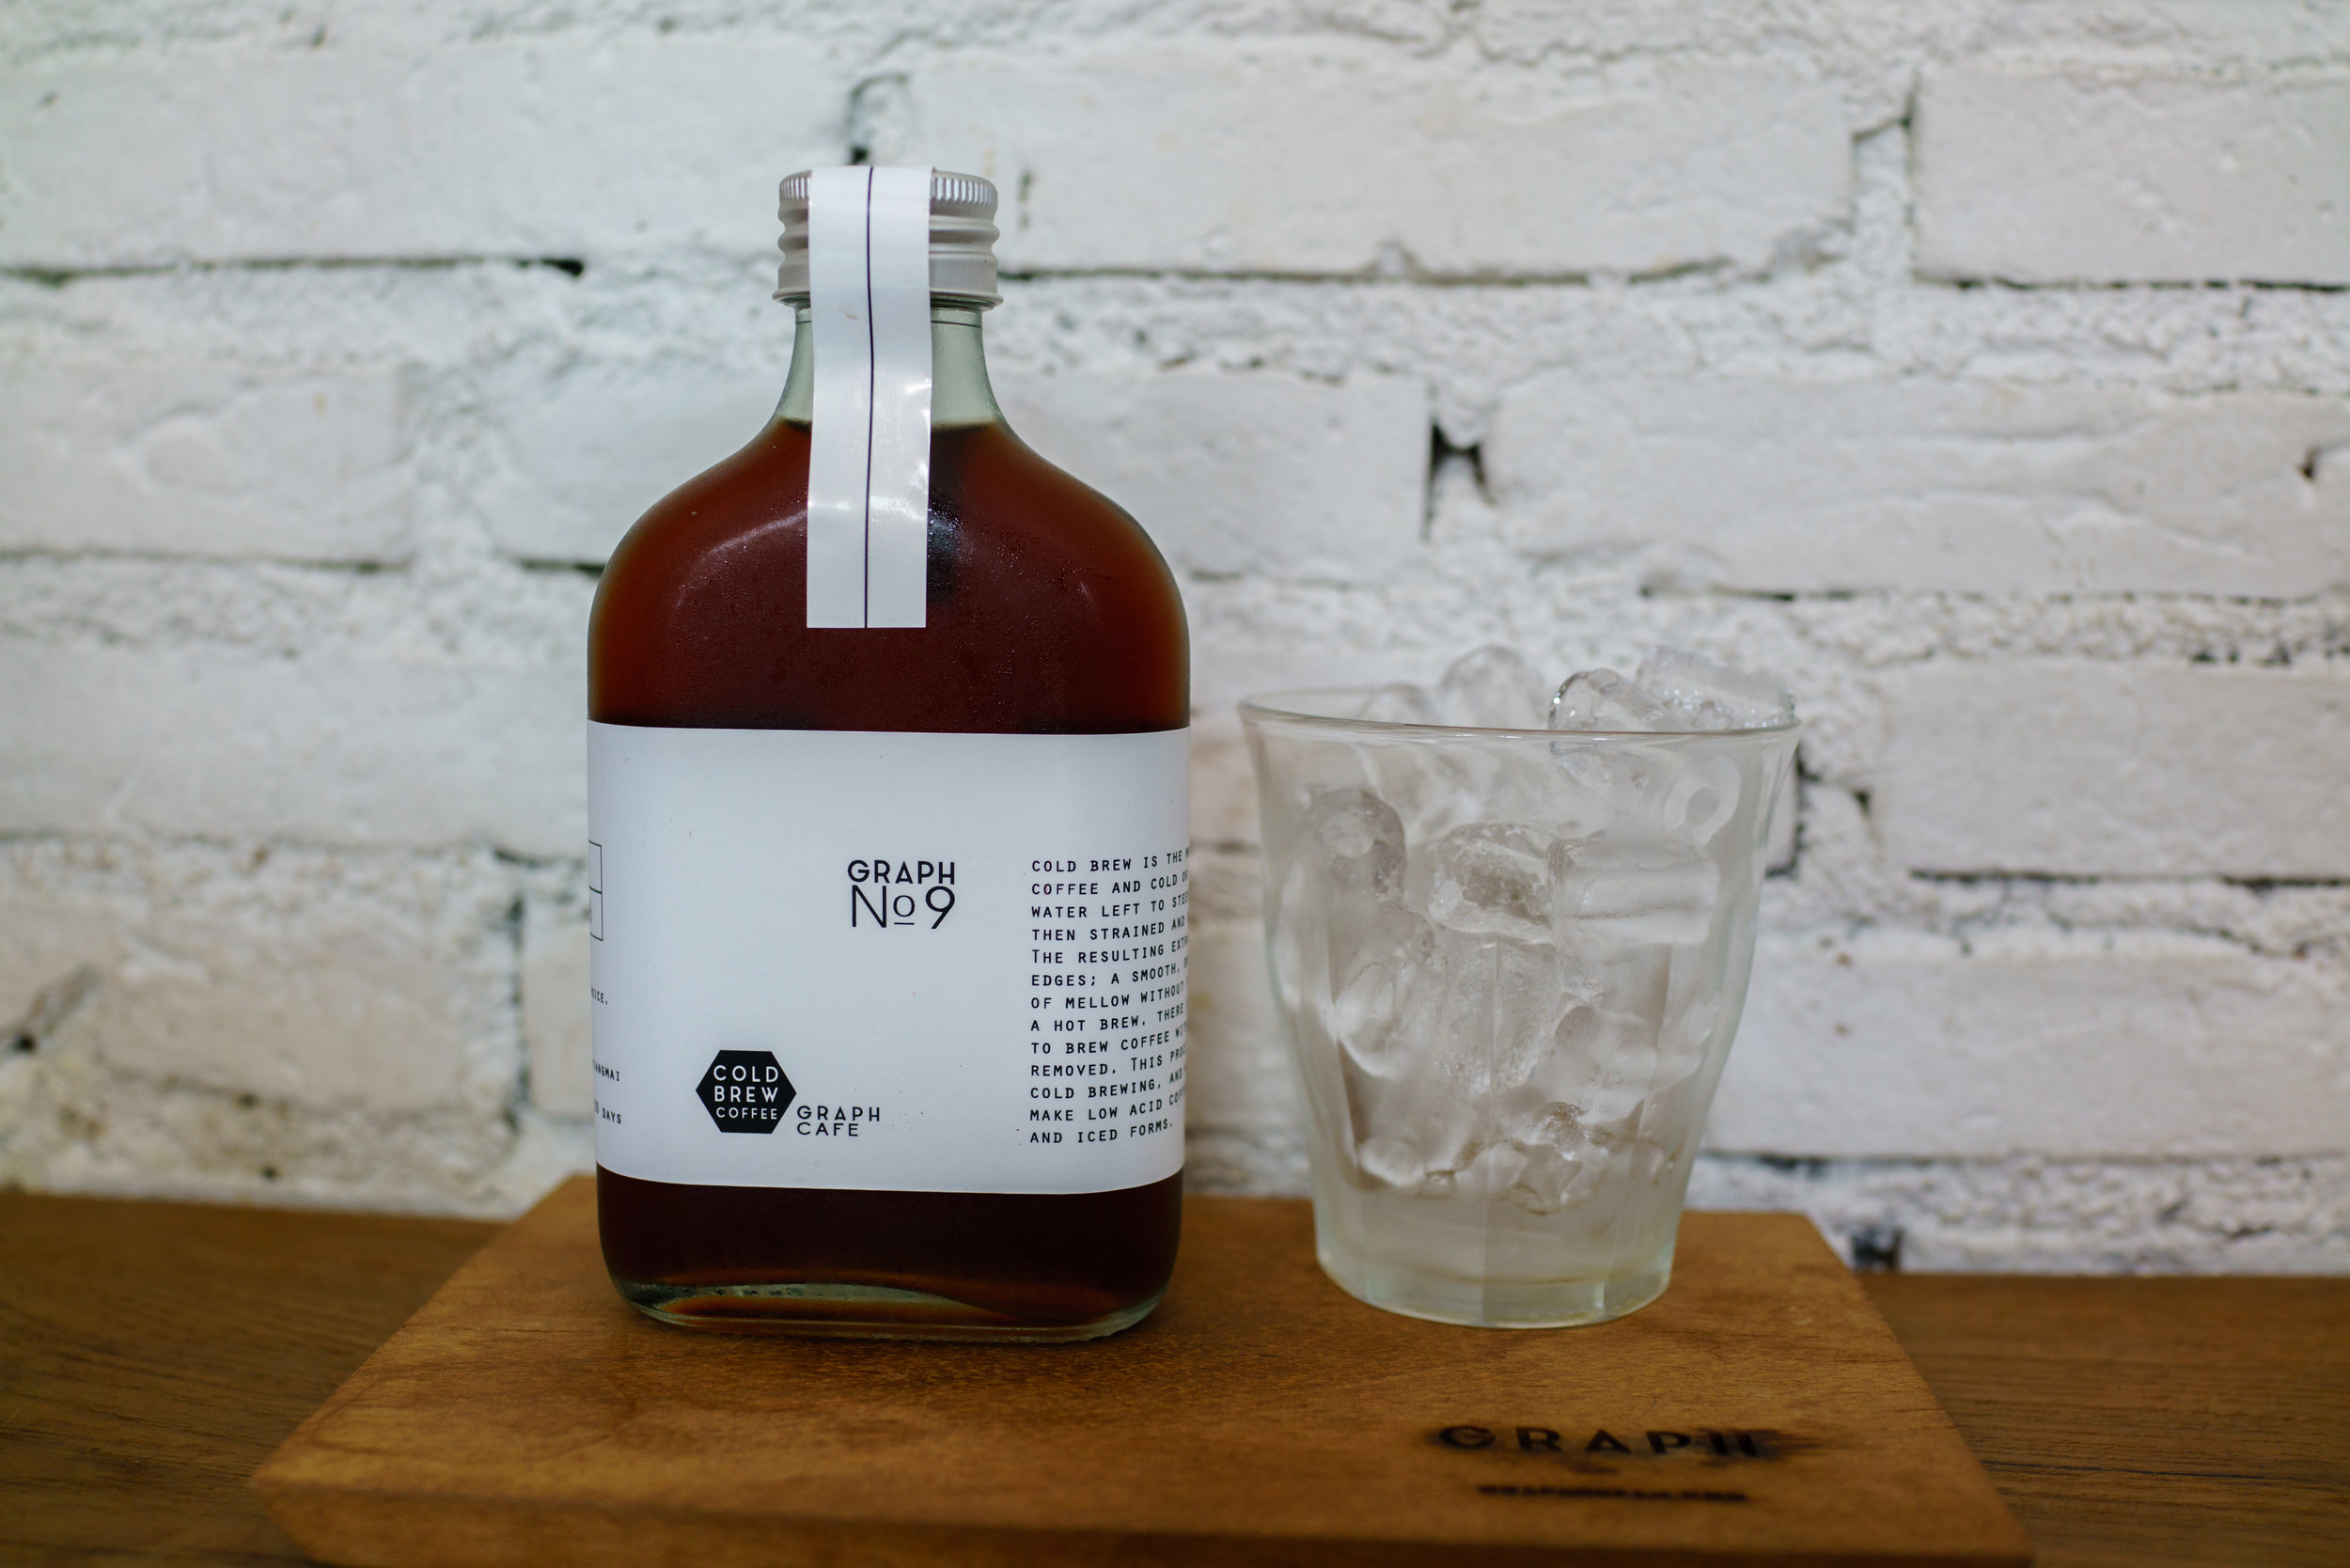 Cold Brew No. 9 at Graph Cafe in  Old Town